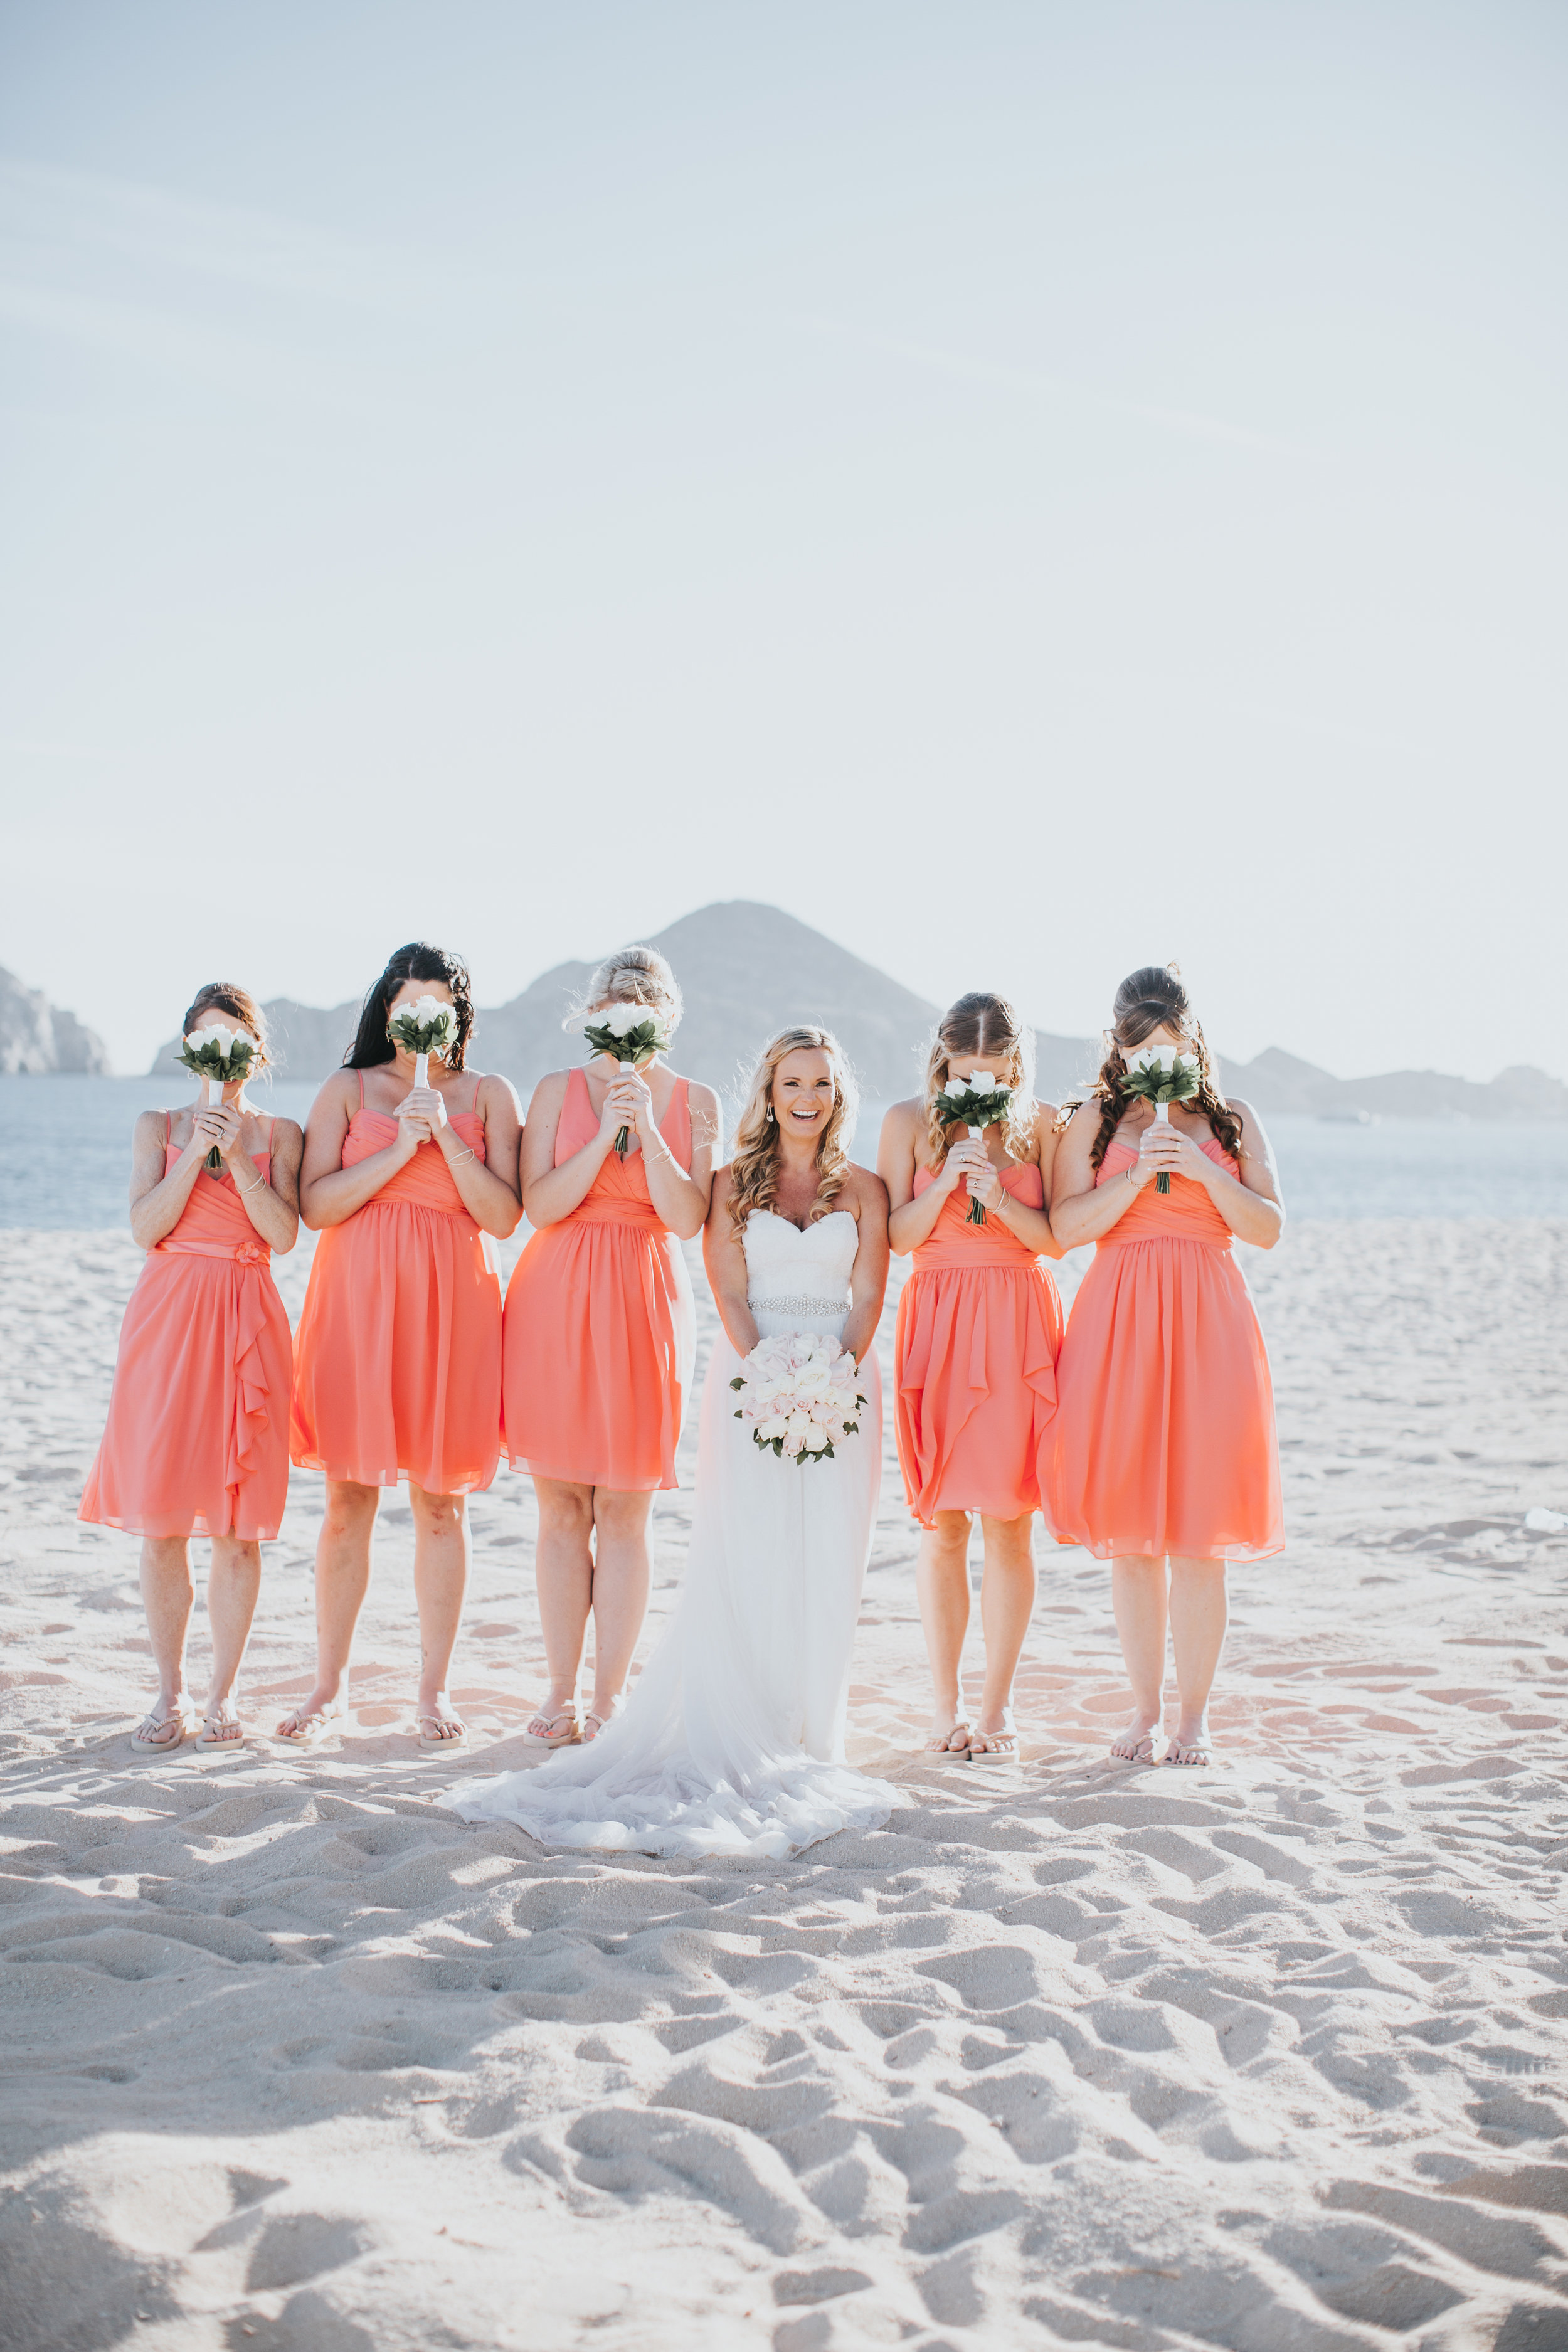 Ashleynickdestinationweddingmexicorivkahphotography-8.jpg